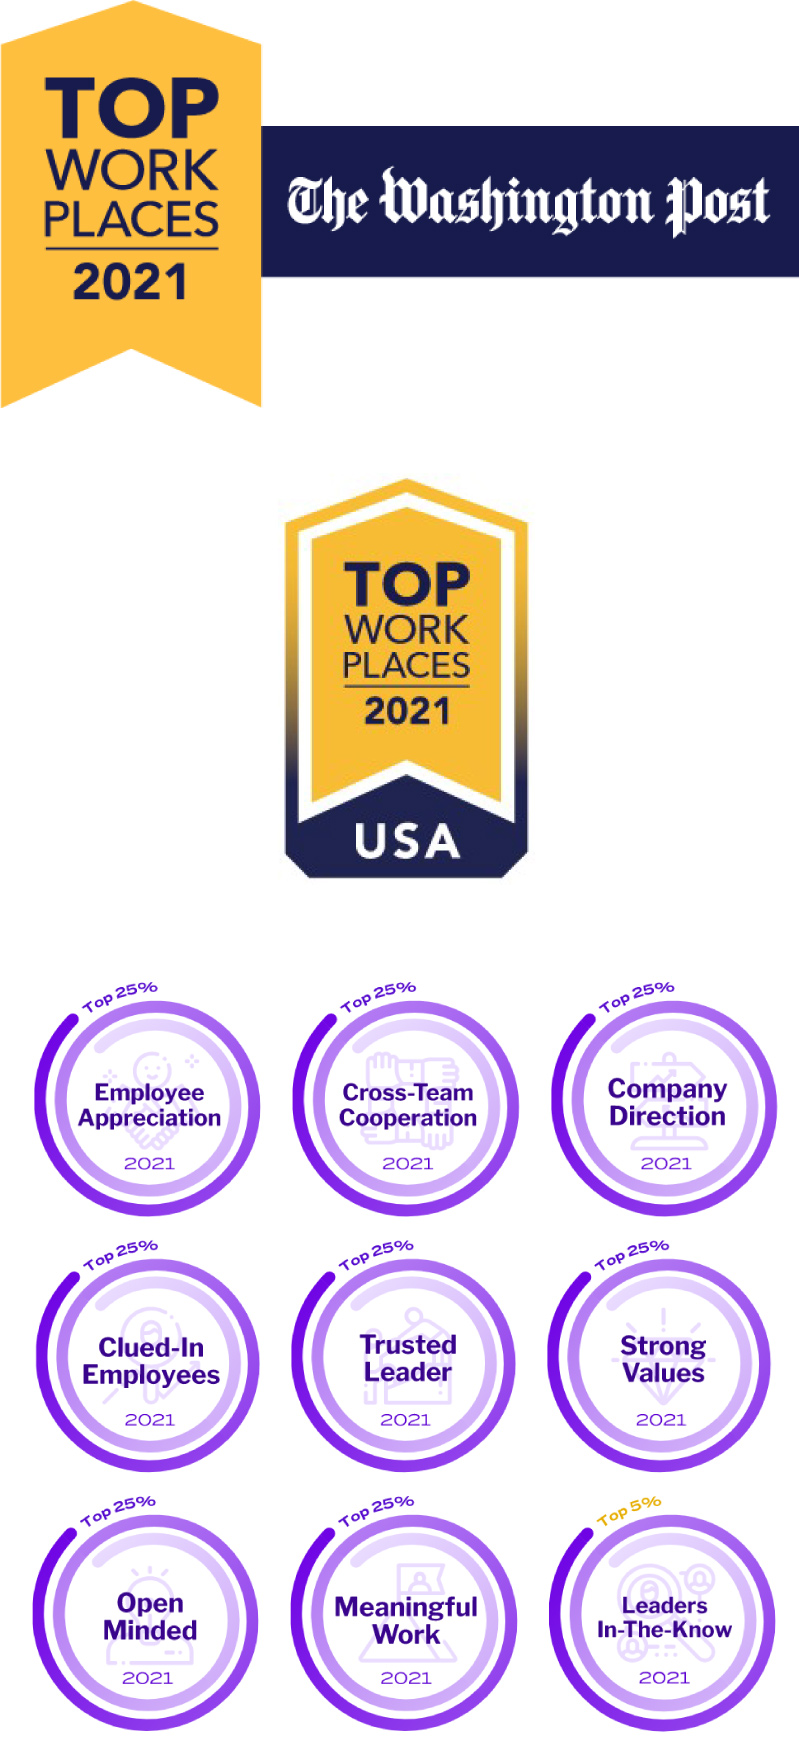 Top Work Places 2019 - The Washington Post